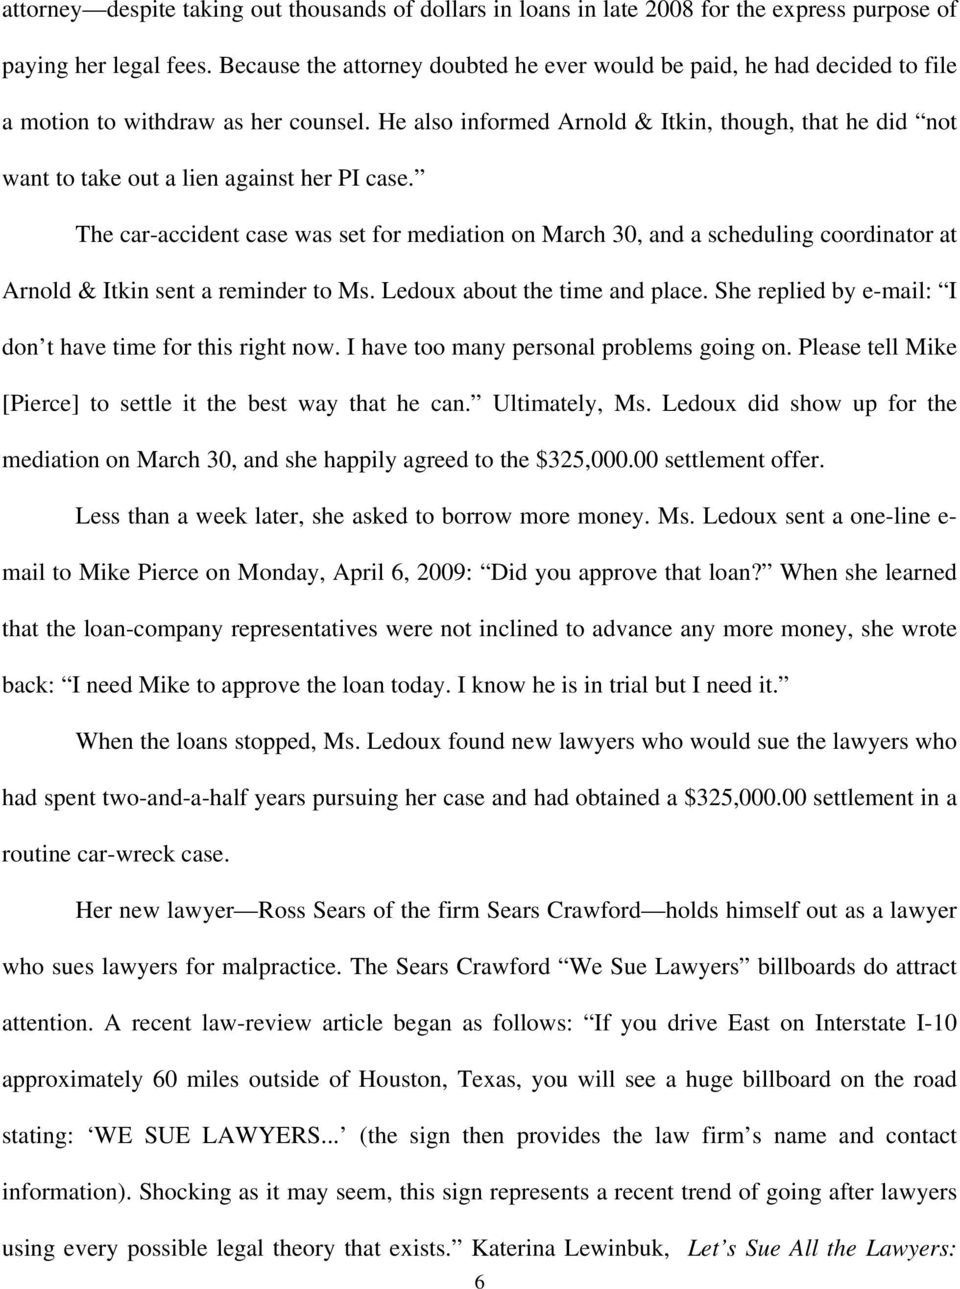 He also informed Arnold & Itkin, though, that he did not want to take out a lien against her PI case.